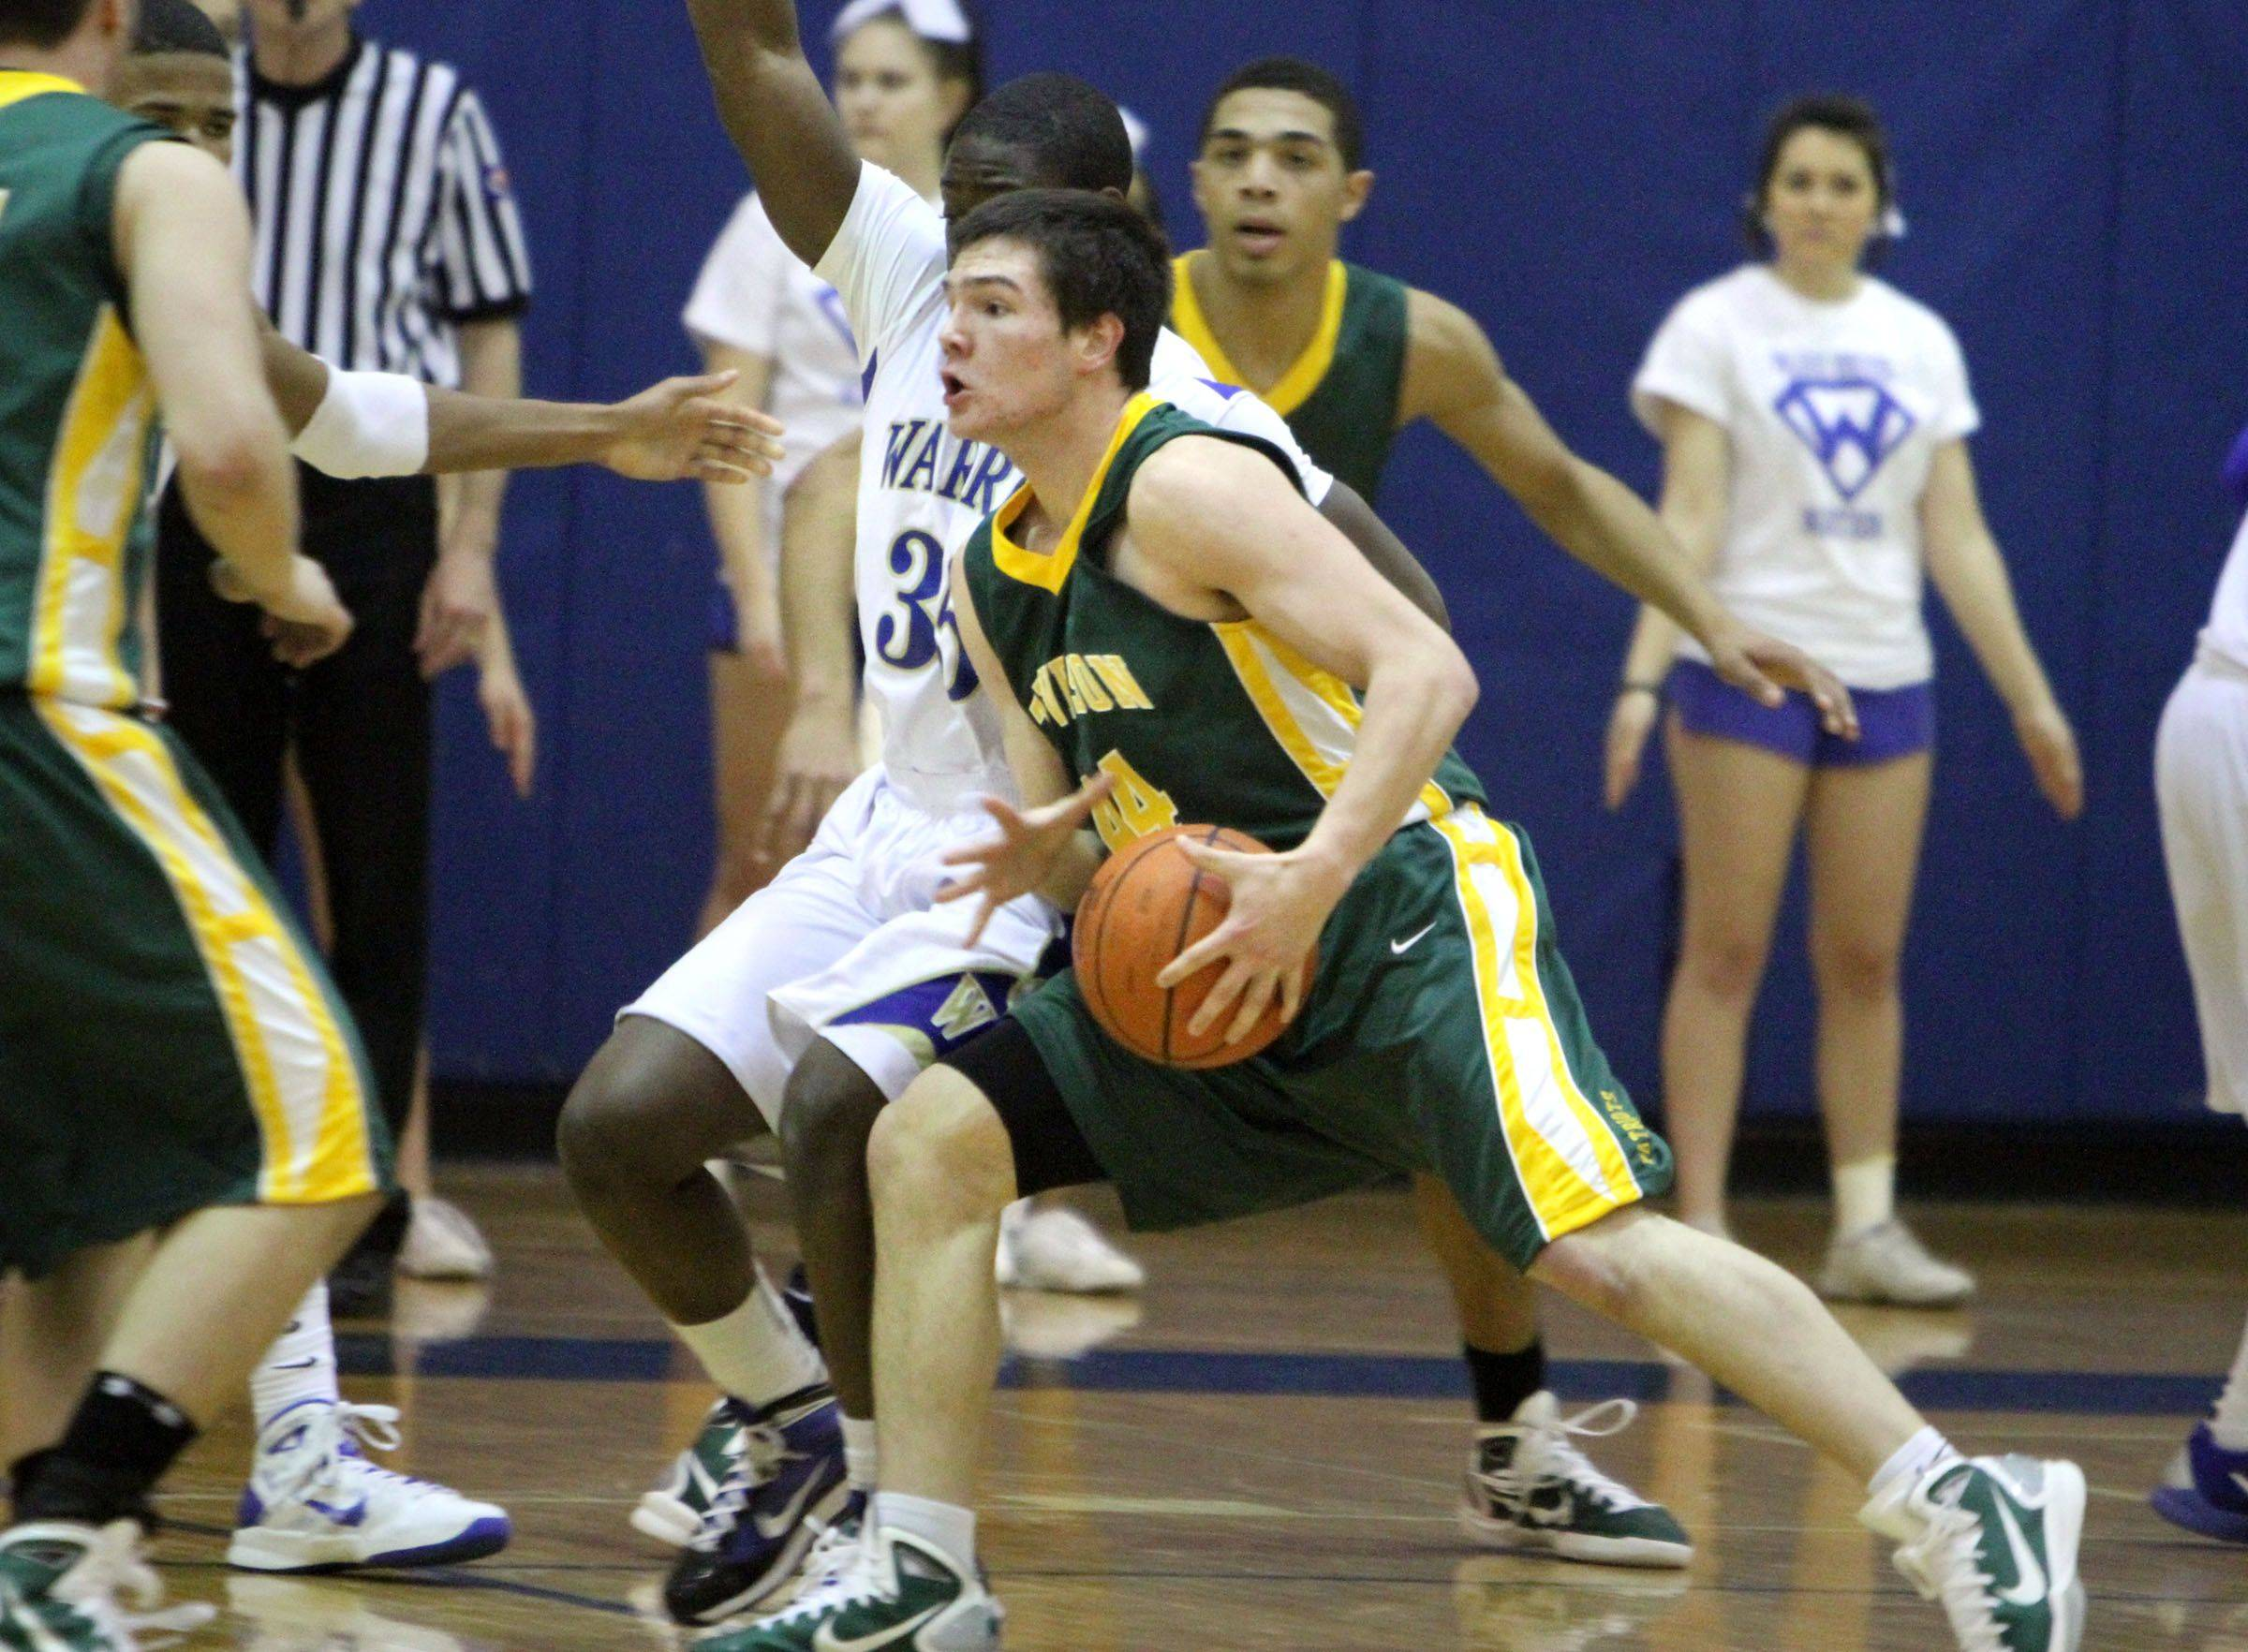 Images from the Stevenson at Warren boys basketball game Friday, January 14.